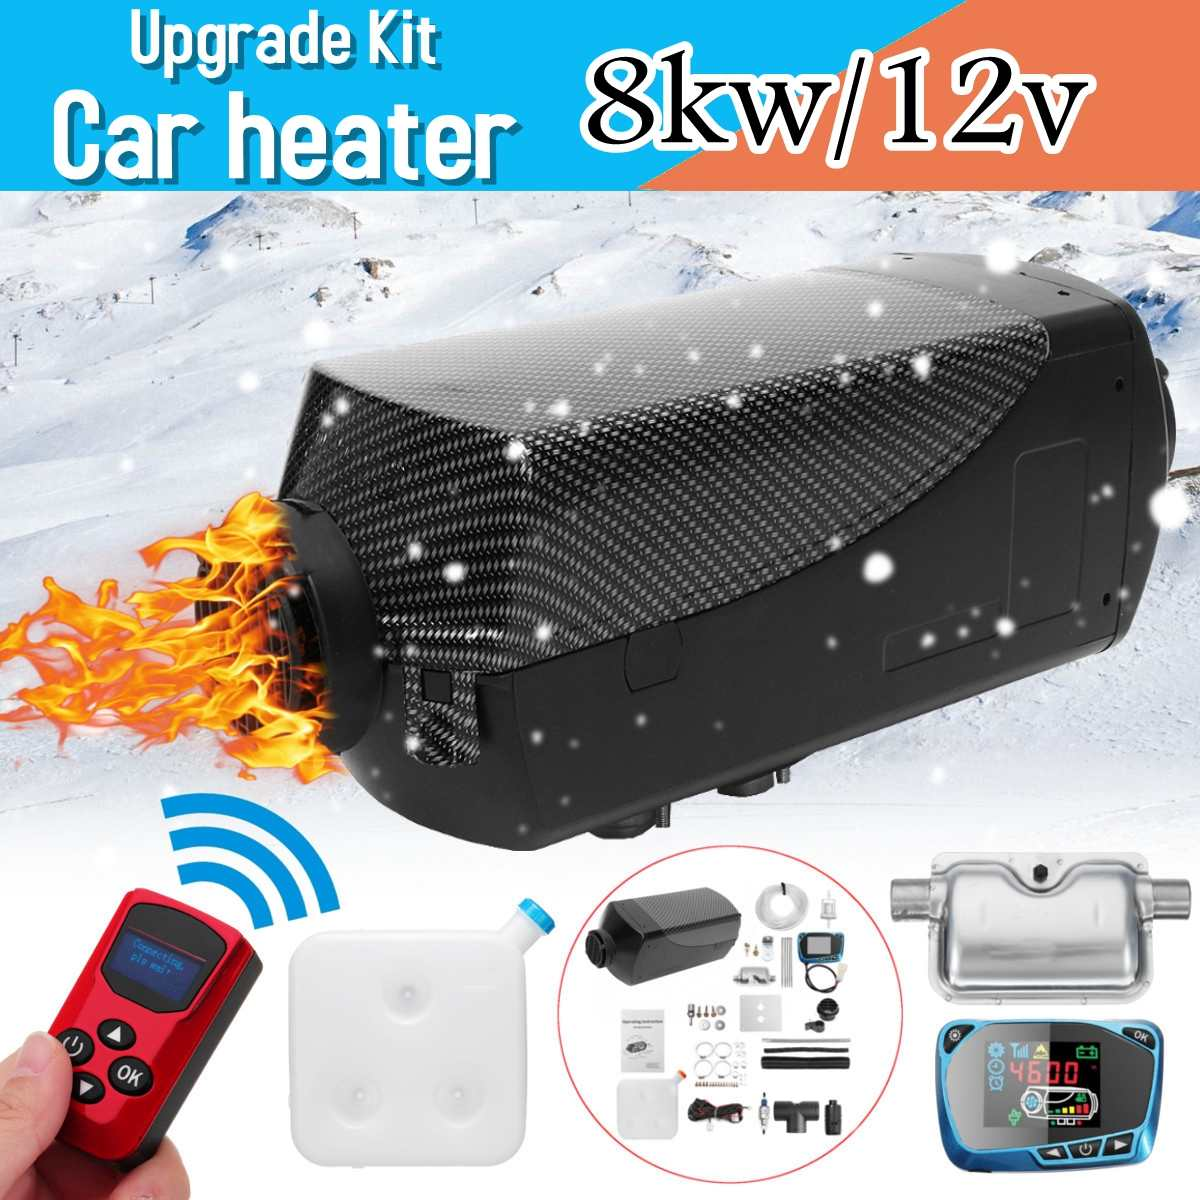 12V 8KW Diesels Air Car Heater Silencer <font><b>15L</b></font> <font><b>Tank</b></font> Car Truck Boat Motorhome Parking With Remote Control LCD Monitor for RV Bus image